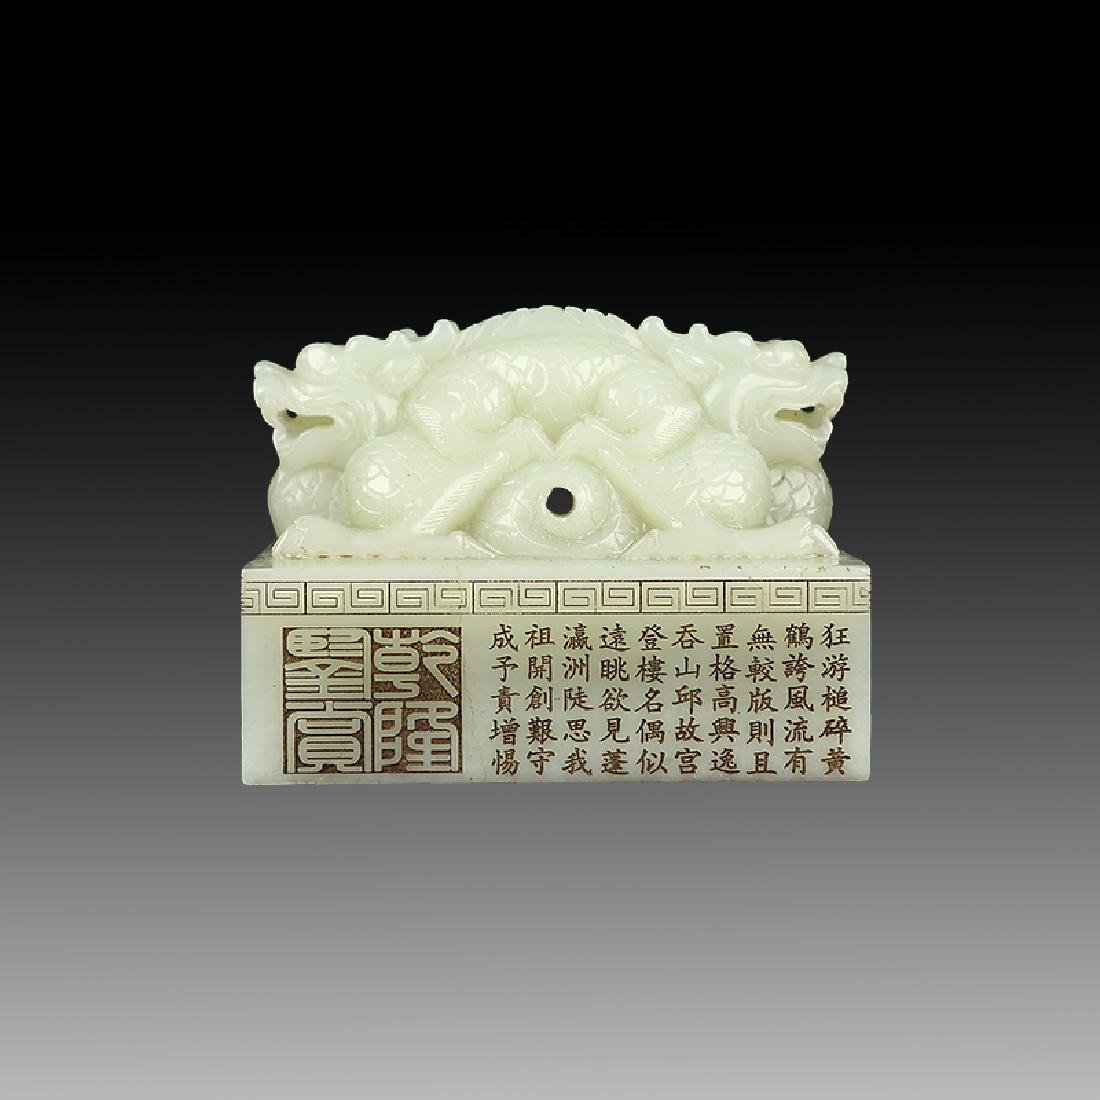 Chinese Qing Dynasty White Hetian Jade Dragon Seal - 7